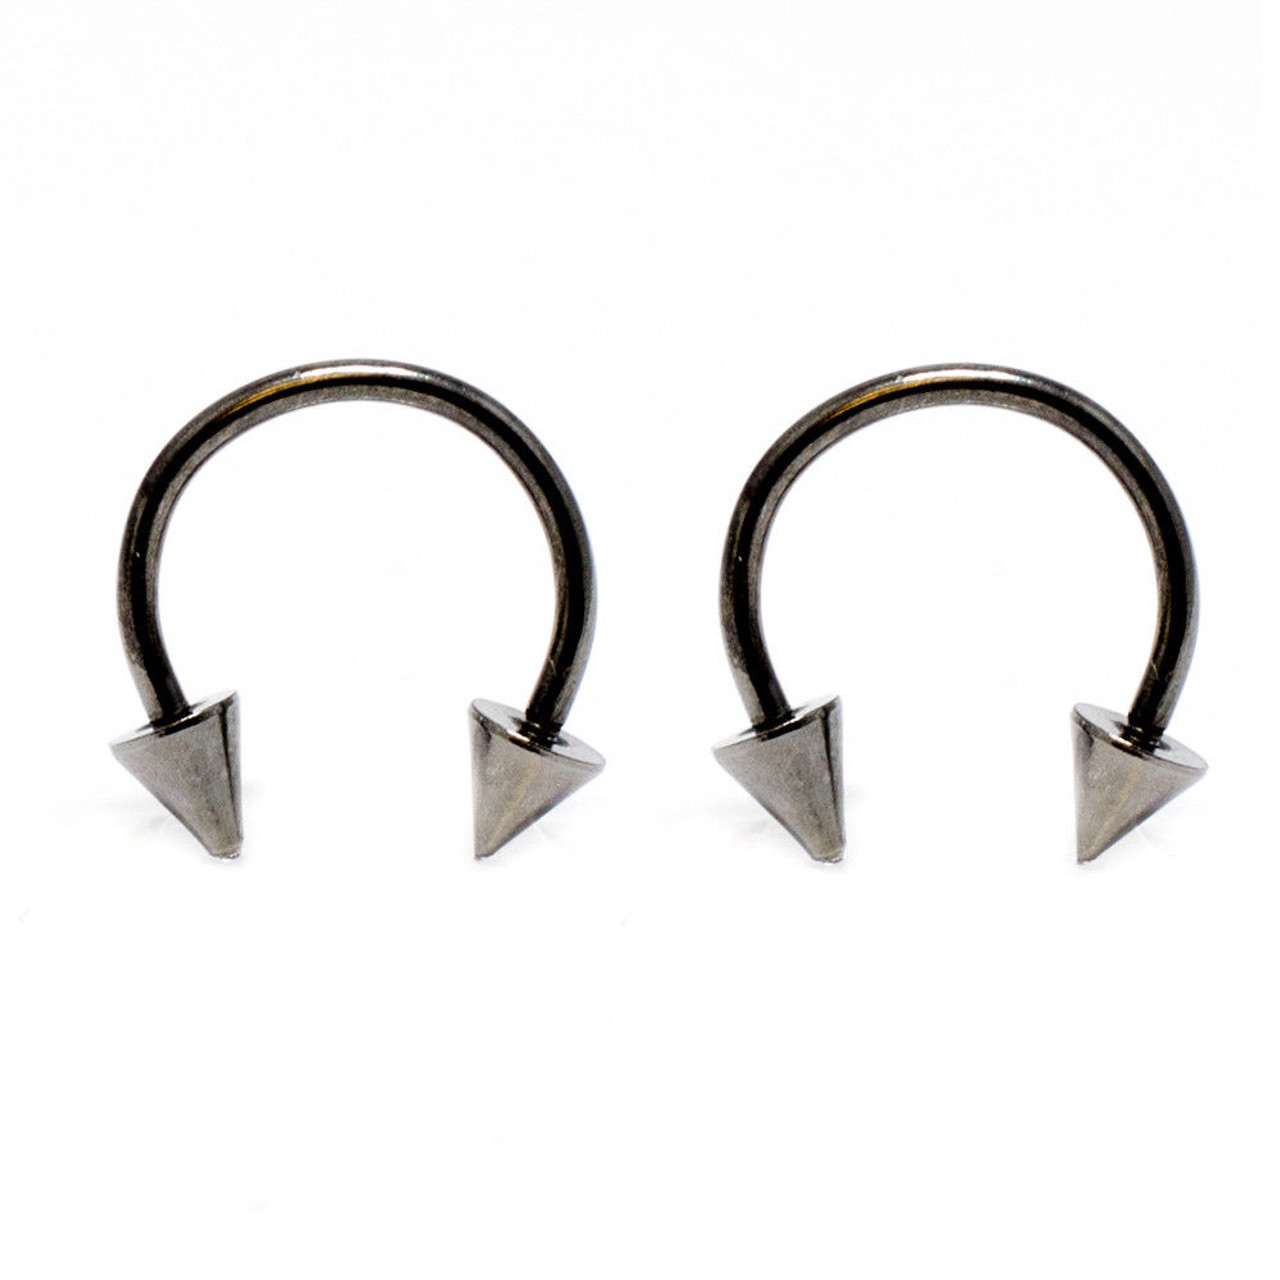 2 pc 16g Stainless Steel Lip Ring Gold and Black Labret Curved Bar Free Shipping